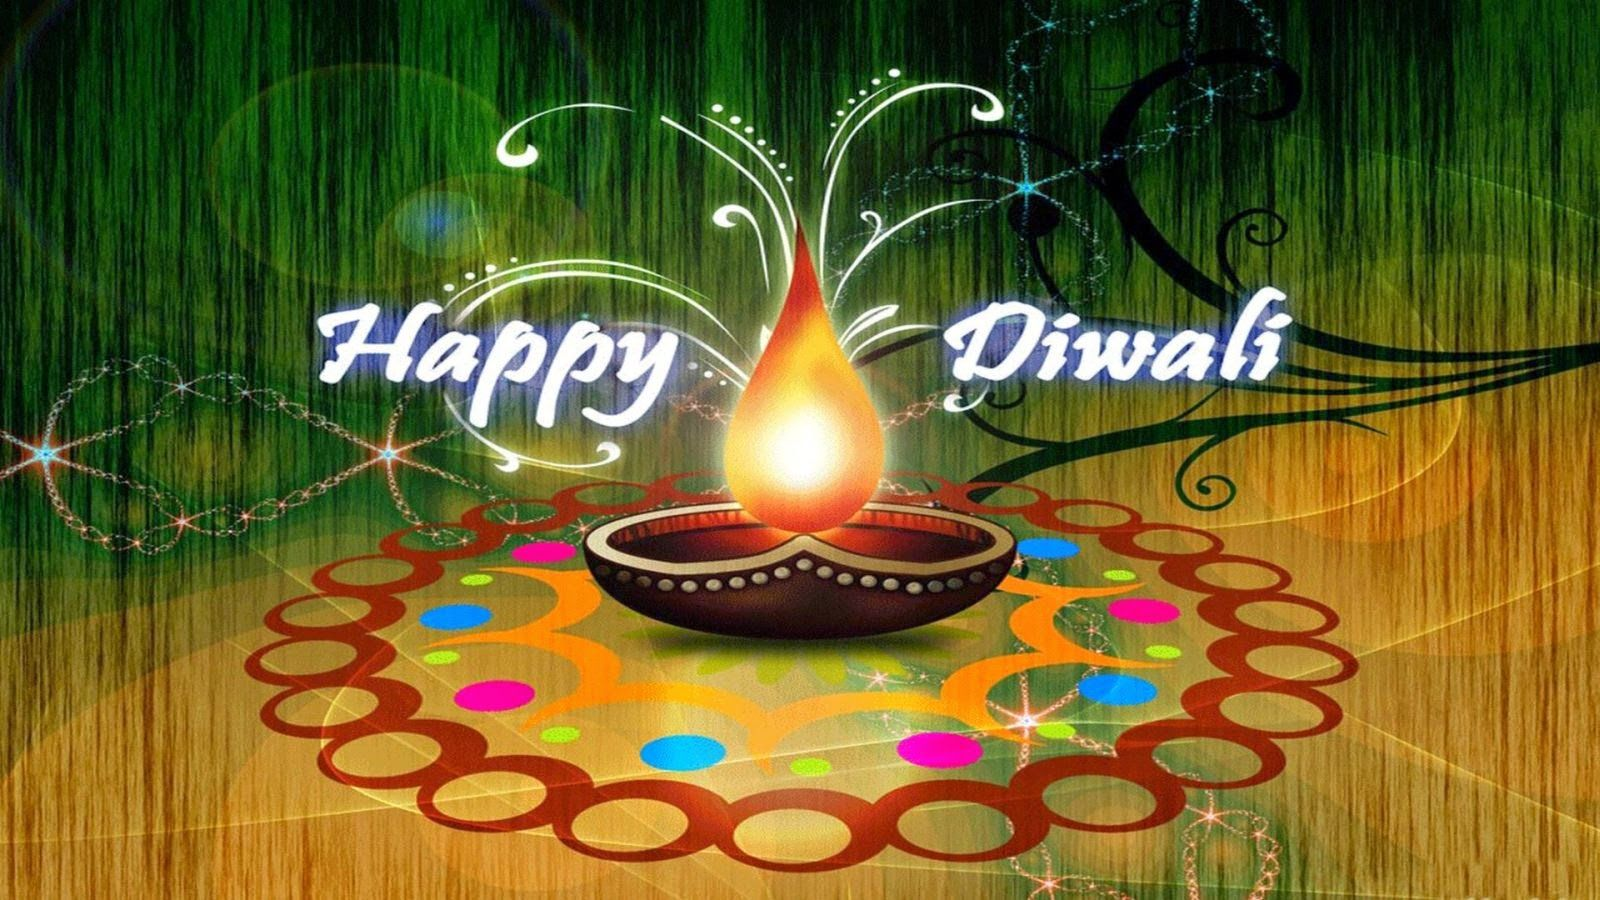 Download Happy Diwali Images Picture And Hd Wallpapers Of Festival Of Light Deepawali Hd P Happy Diwali Wallpapers Diwali Greetings Happy Diwali Hd Wallpaper